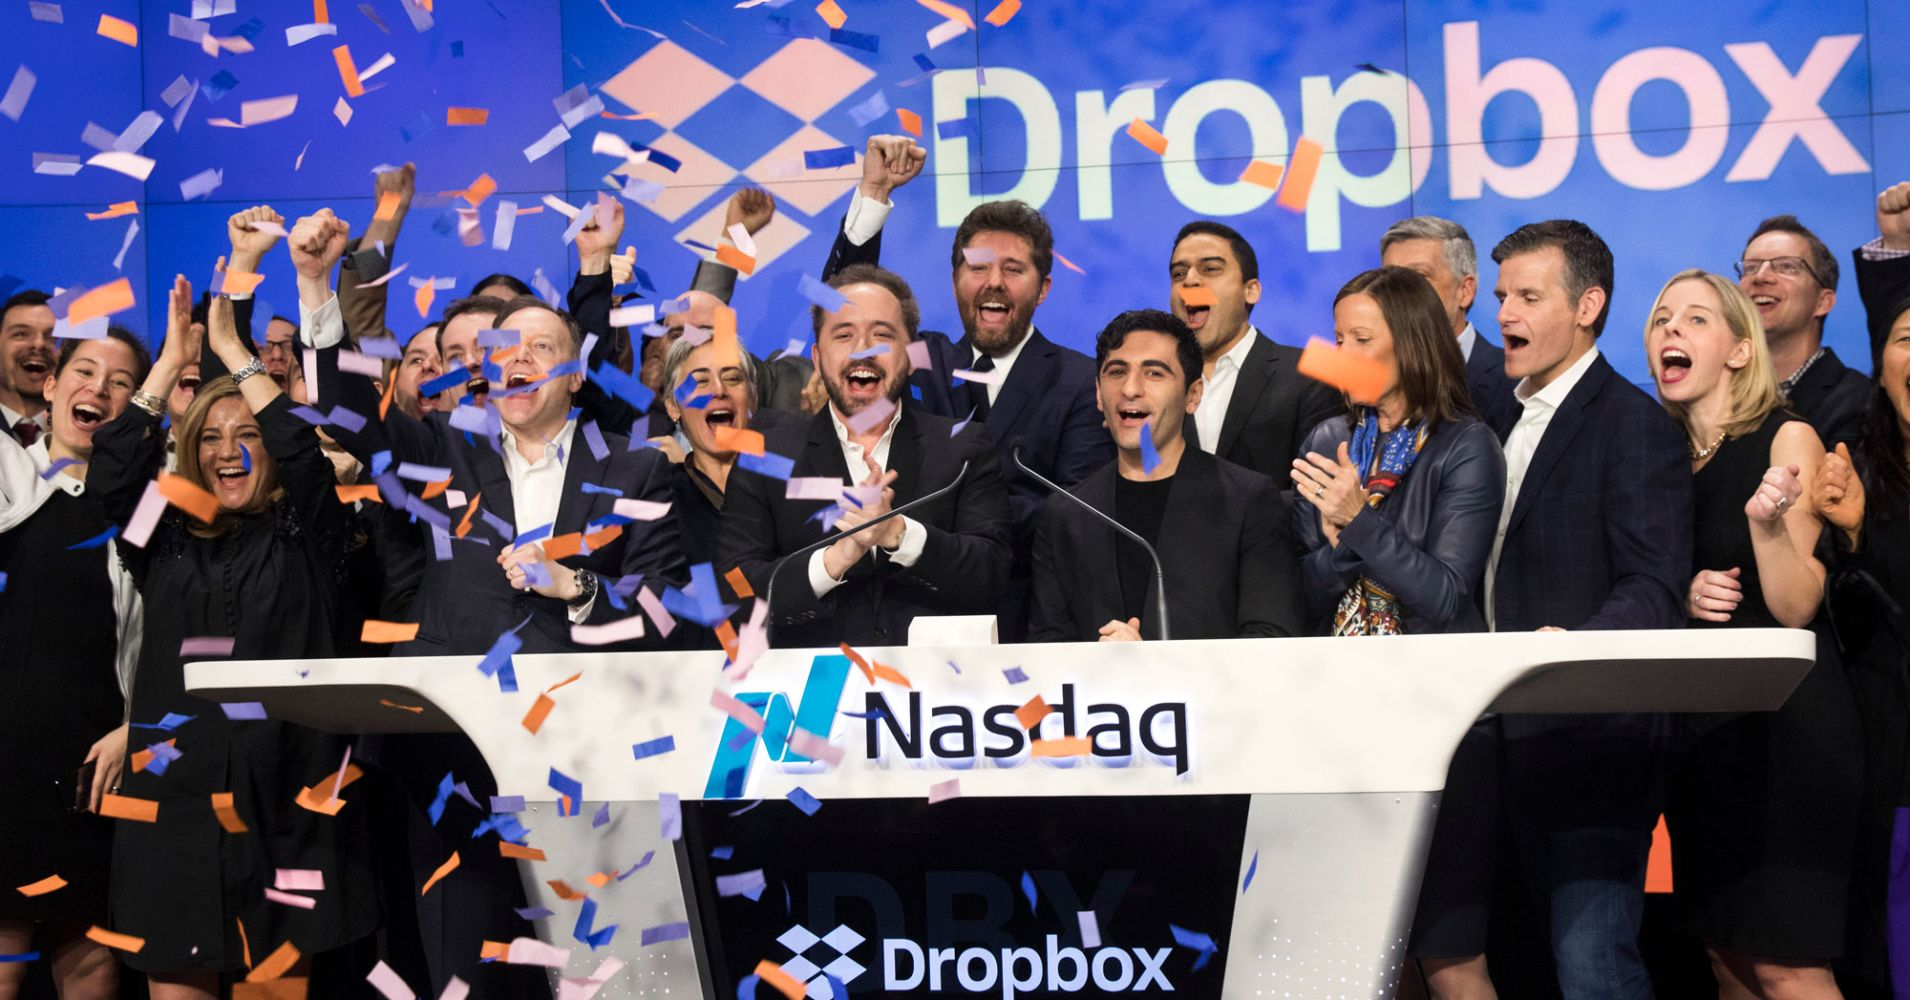 Dropbox CEO Drew Houston and Dropbox co-founder Arash Ferdowsi (C) celebrate the launch of Dropbox's initial public offering as they ring the opening bell at Nasdaq MarketSite, March 23, 2018 in New York City.